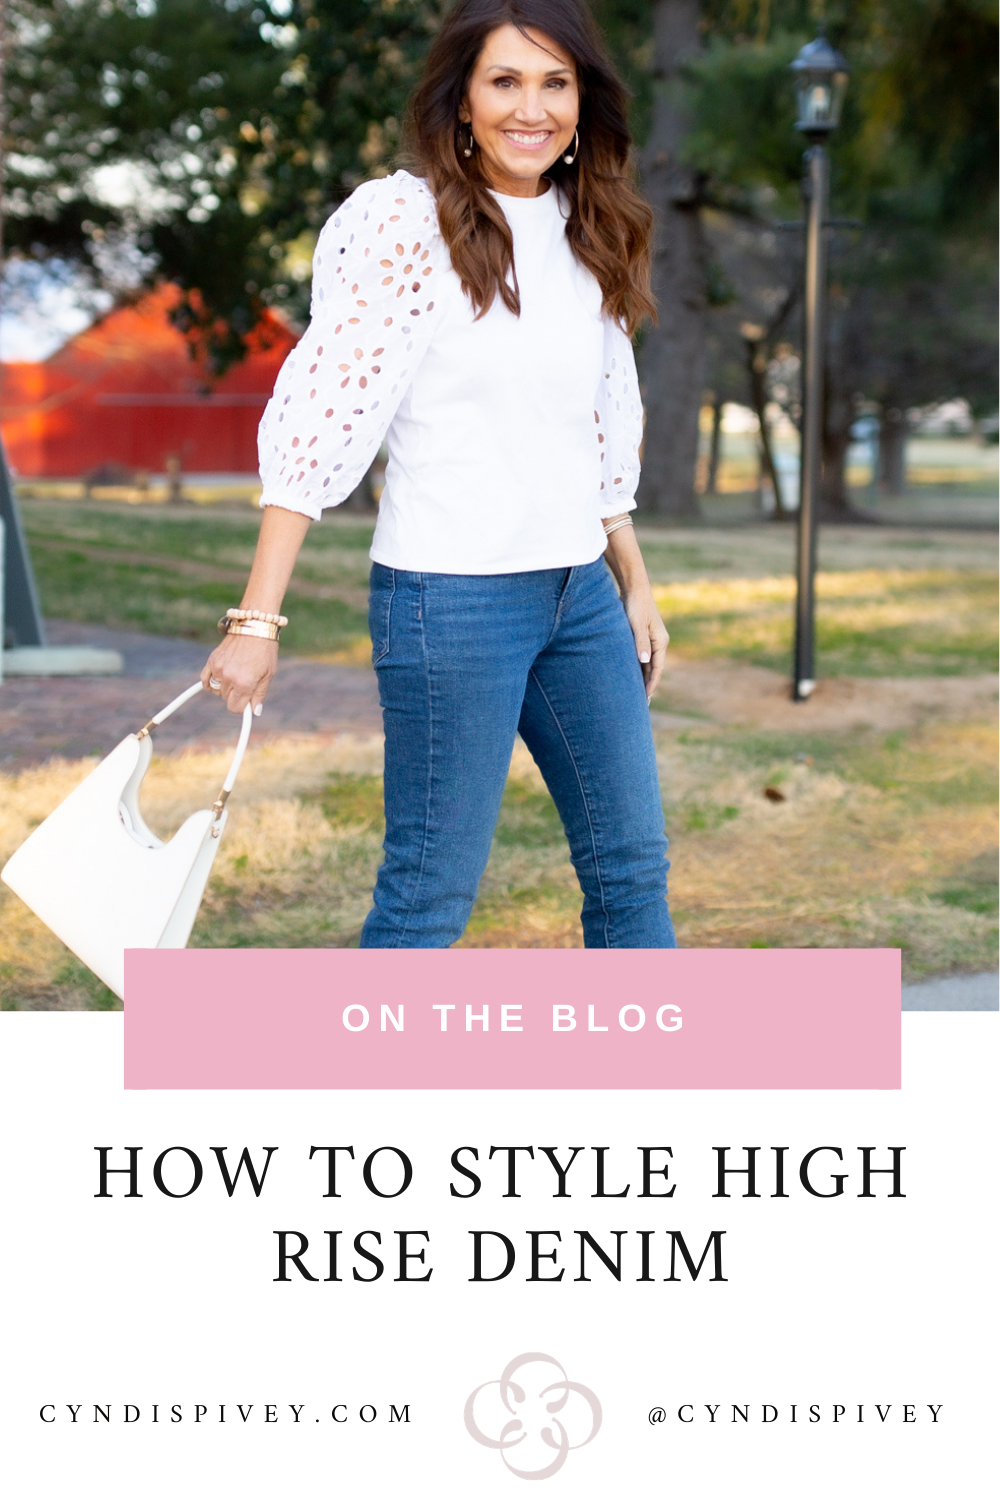 How to style high rise denim